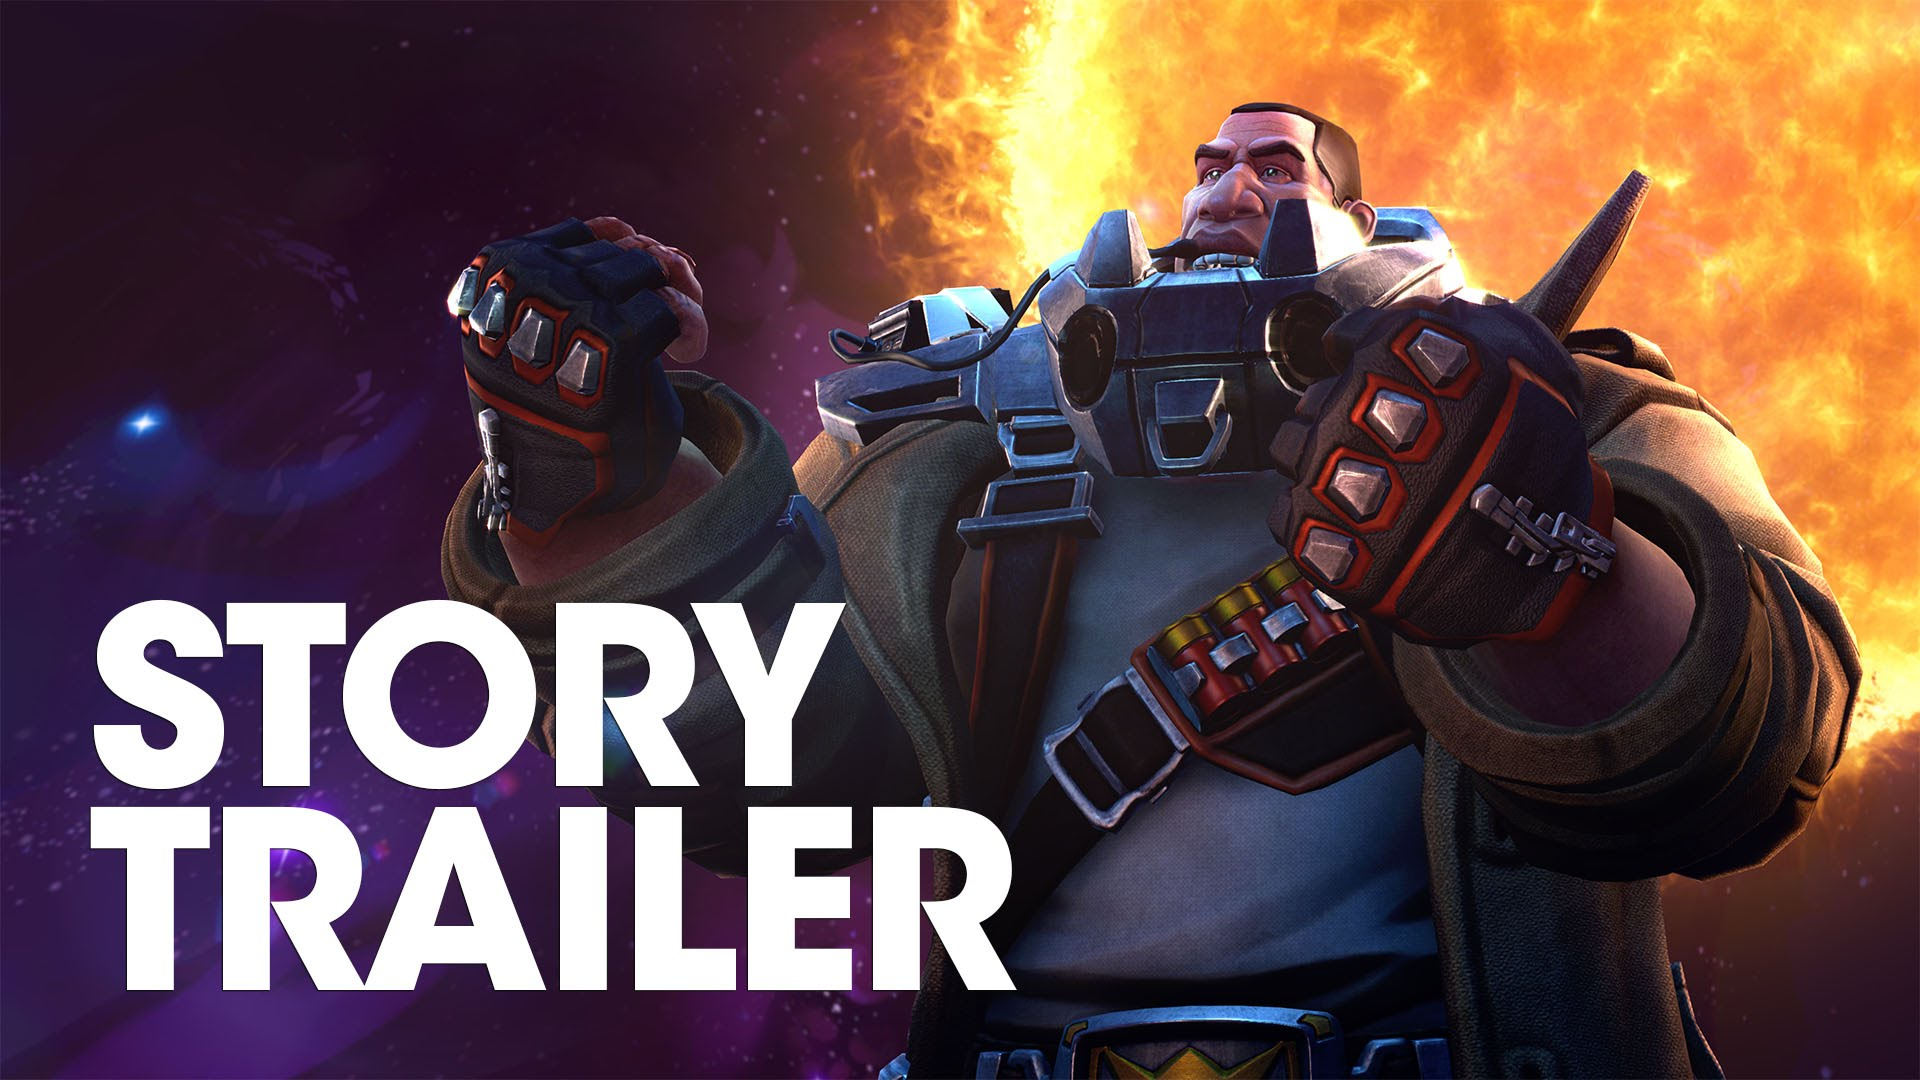 Battleborn: Live Together or Die Alone – Story Trailer